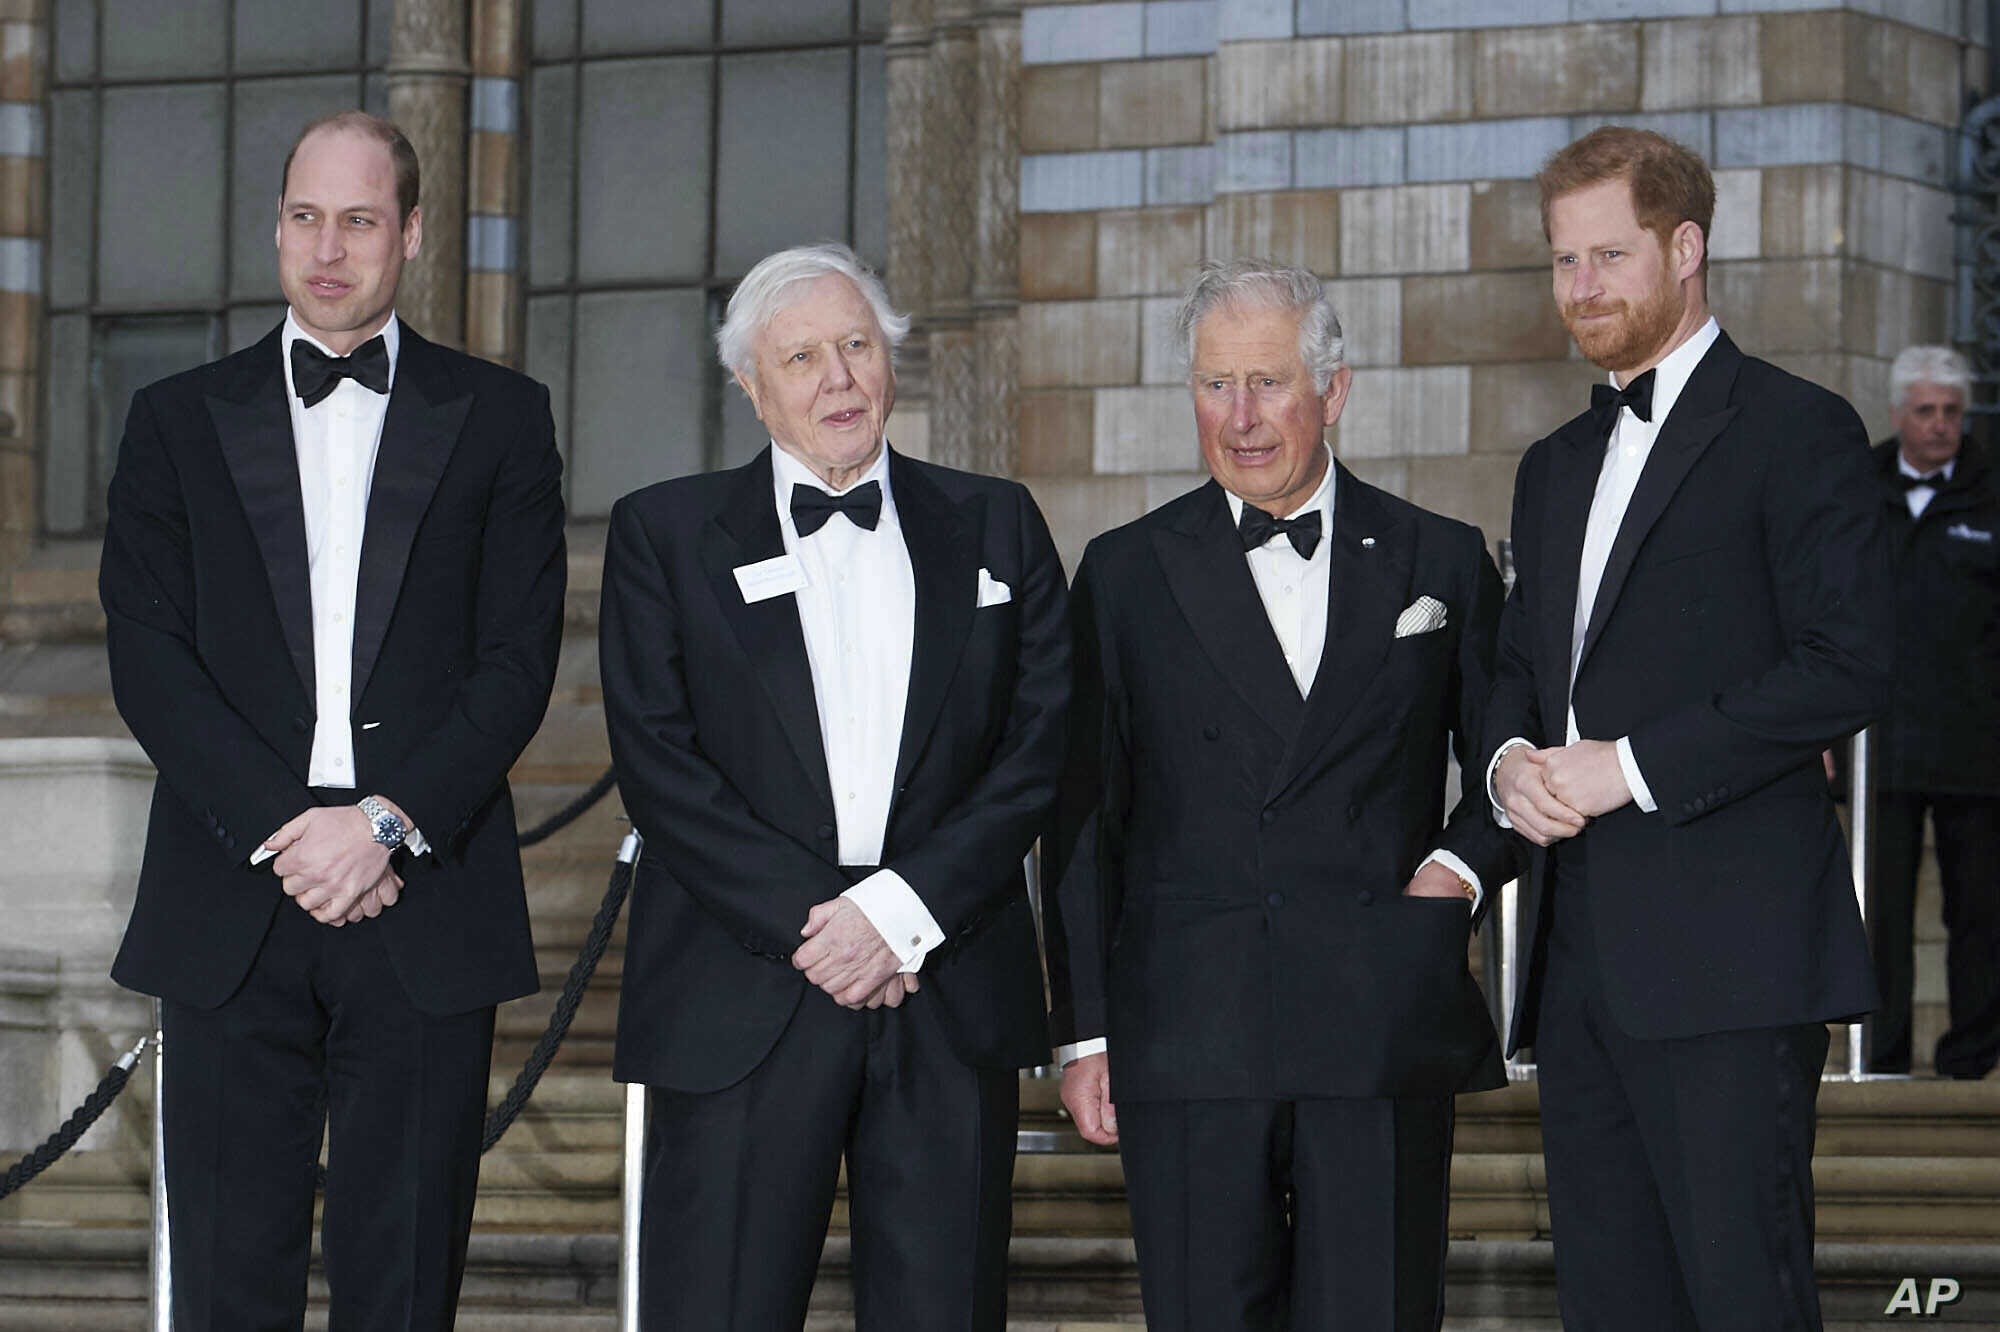 Prince William, The Duke of Cambridge, Sir David Attenborough, Prince Charles, The Prince of Wales and Prince Harry, The Duke of Sussex at the World Premiere of Our Planet held at the Natural History Museum in London, April 4, 2019.